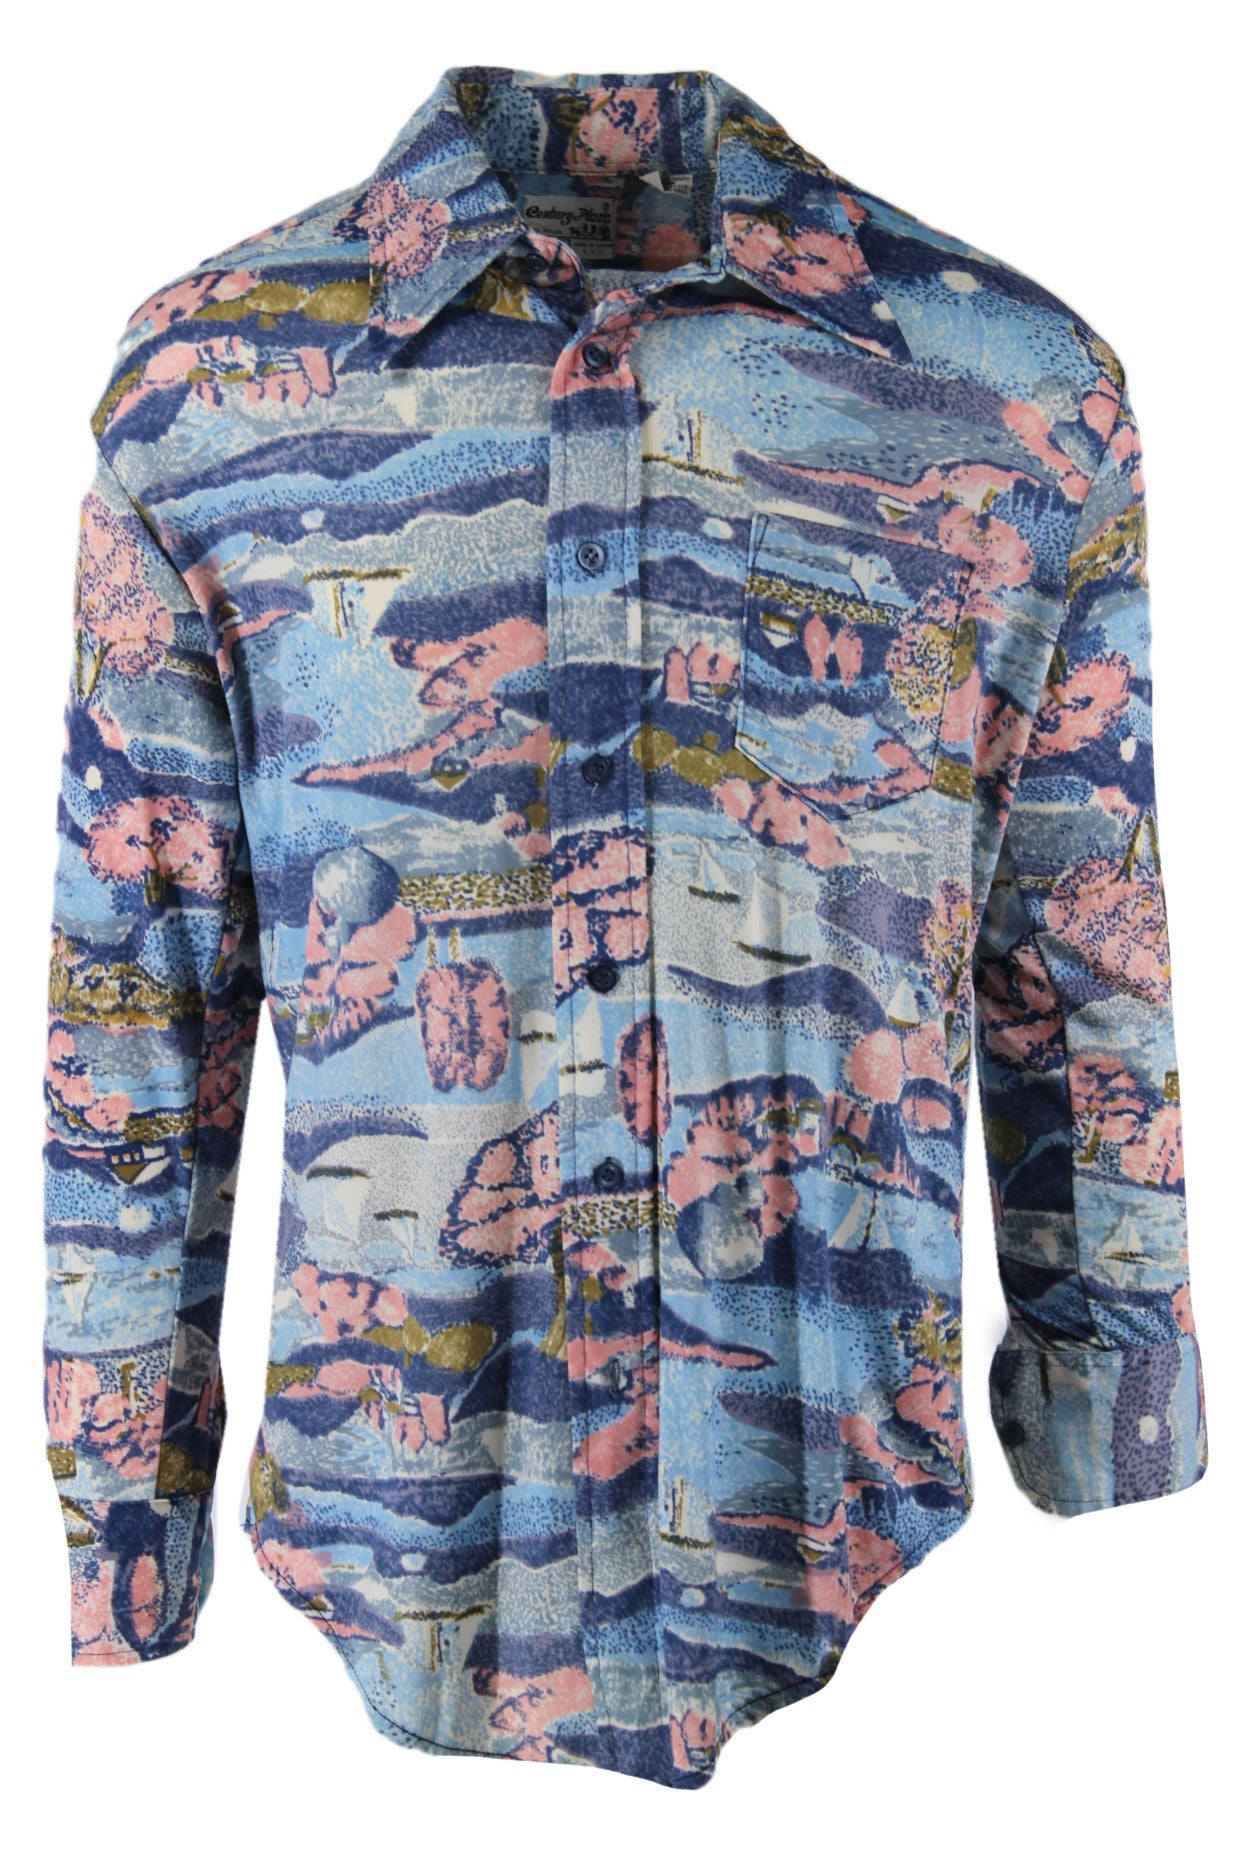 vintage 70's century plaza blue/pink/multi long sleeve button up shirt. features abstract sailboat scene throughout with pockets at left breast.